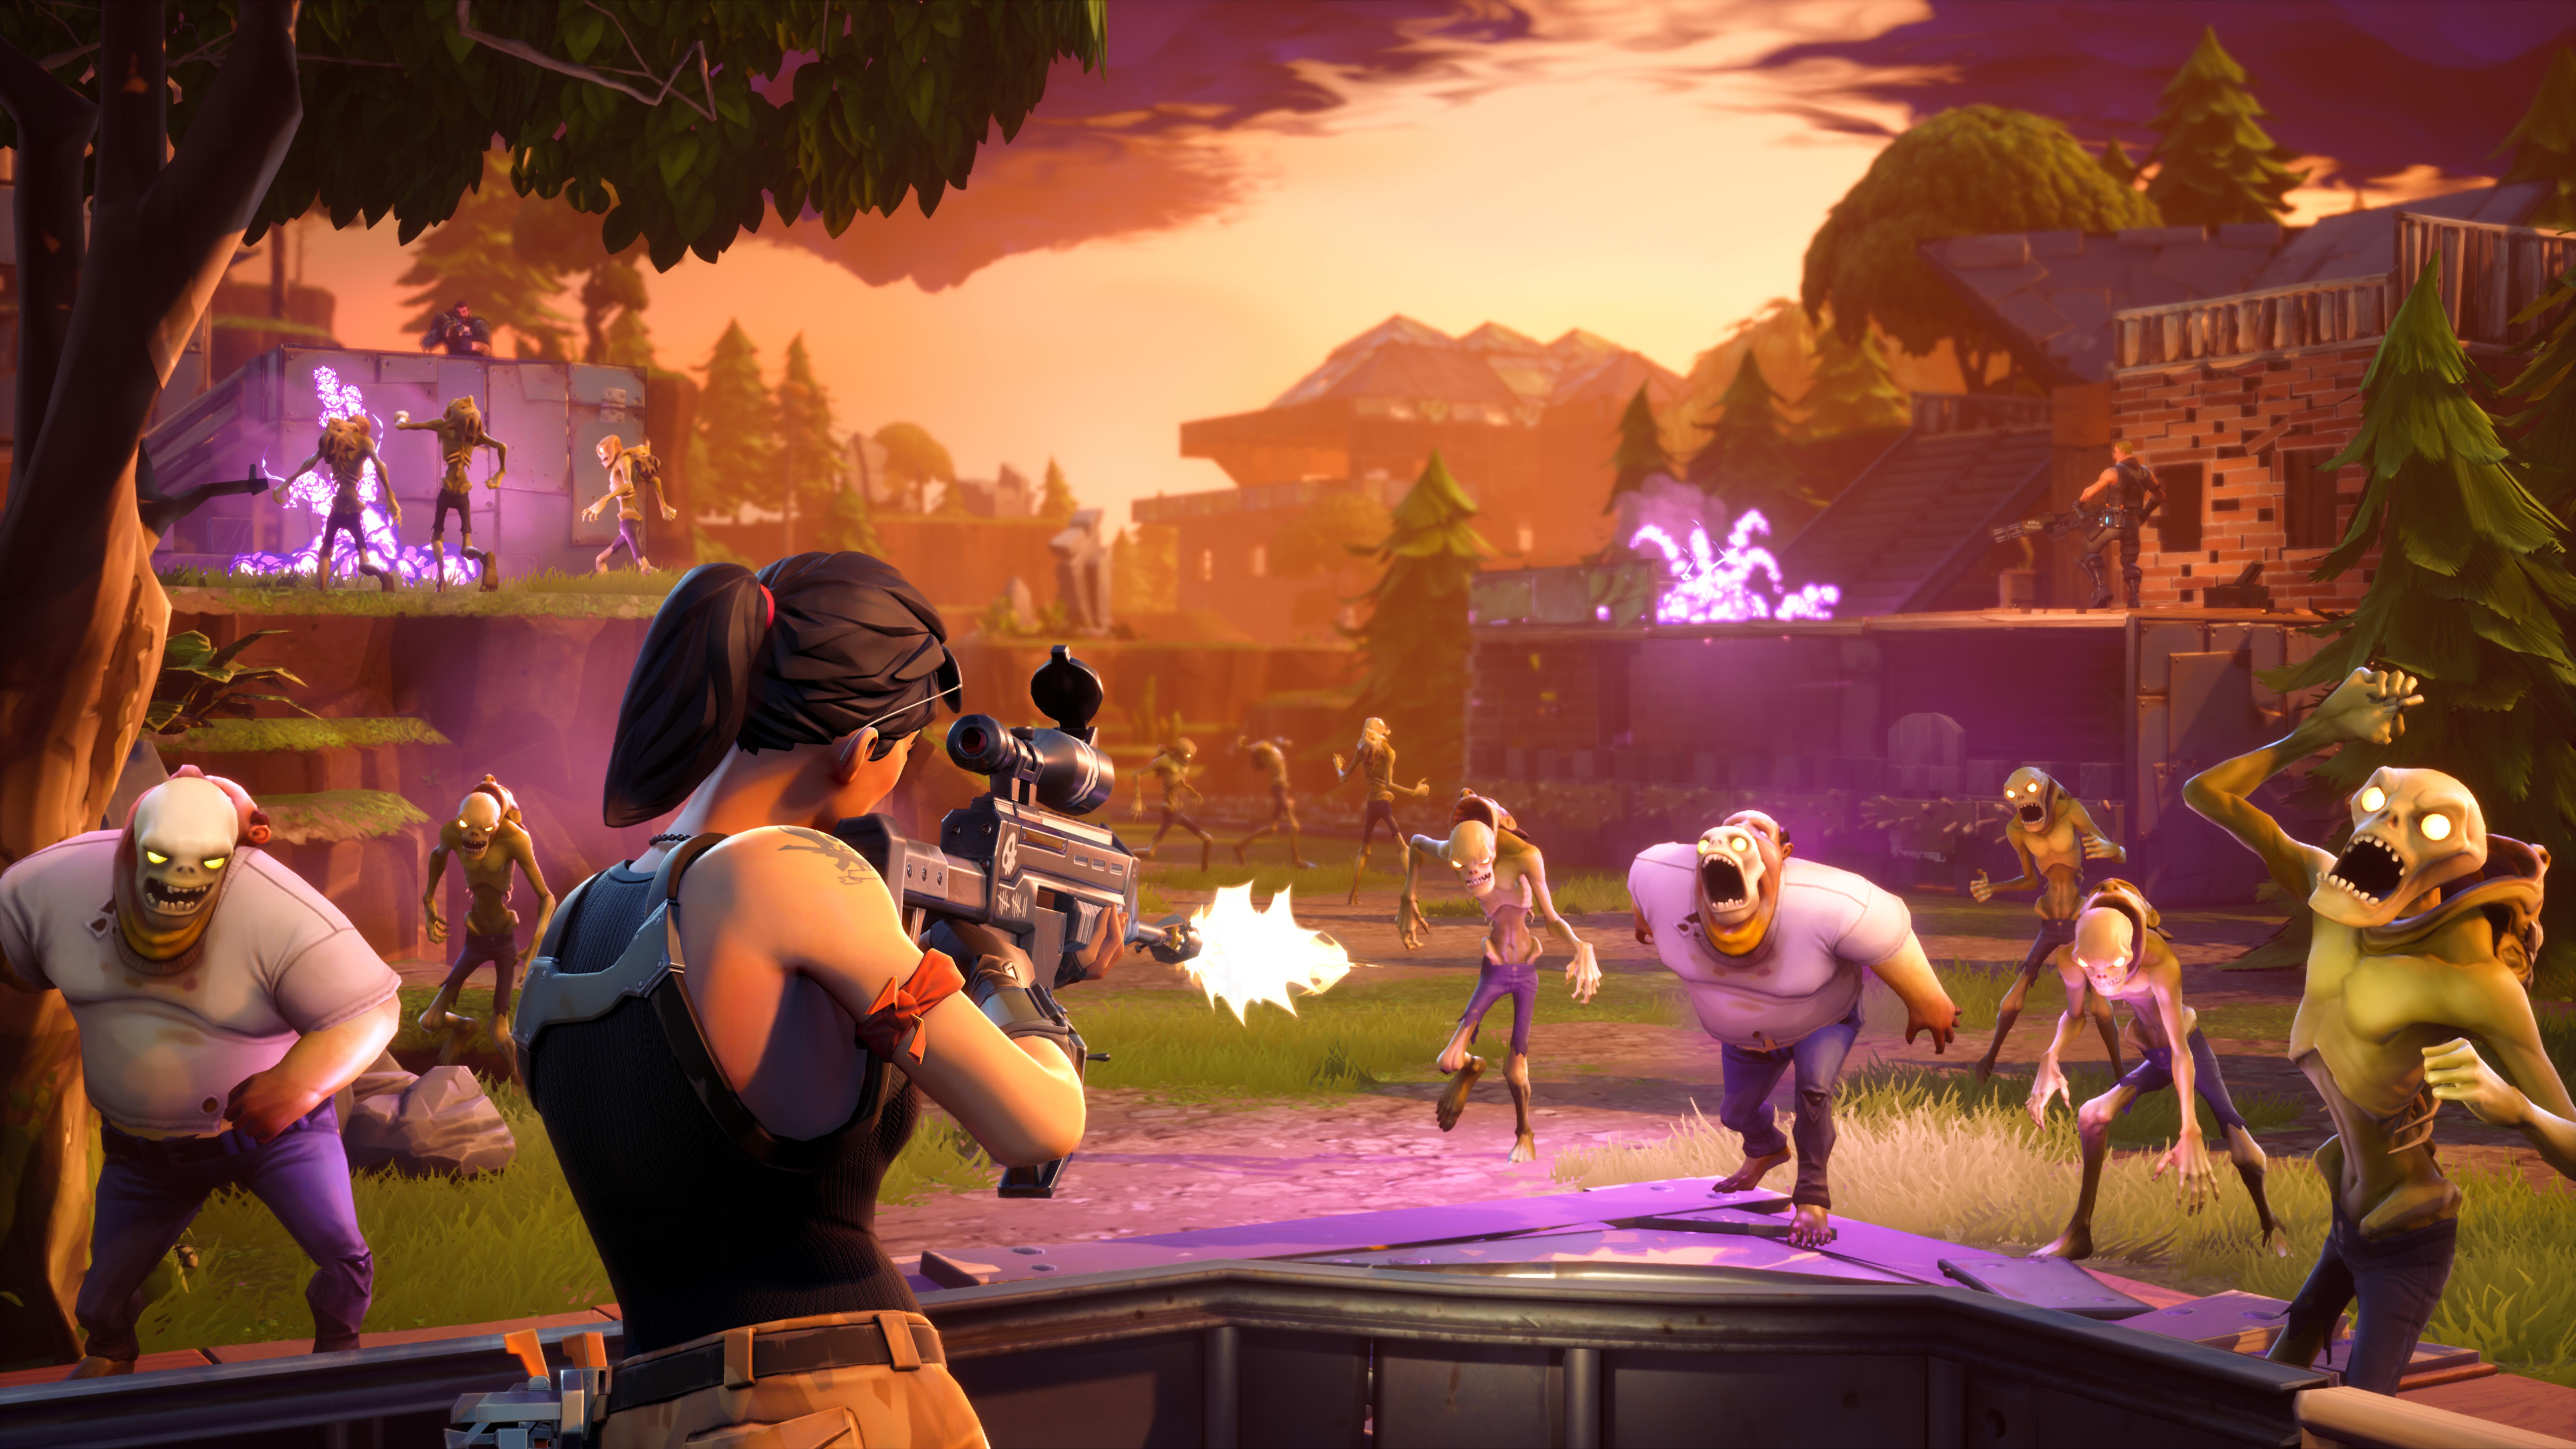 Enlarge / At its best, Fortnite looks (and feels) like this nicely staged  promo pic of in-game action. However, so many free-to-play annoyances drag  this  ... - Fortnite poisons a potentially great game with agonizing F2P limits ... - Husk Monsters Fortnite Wallpapers